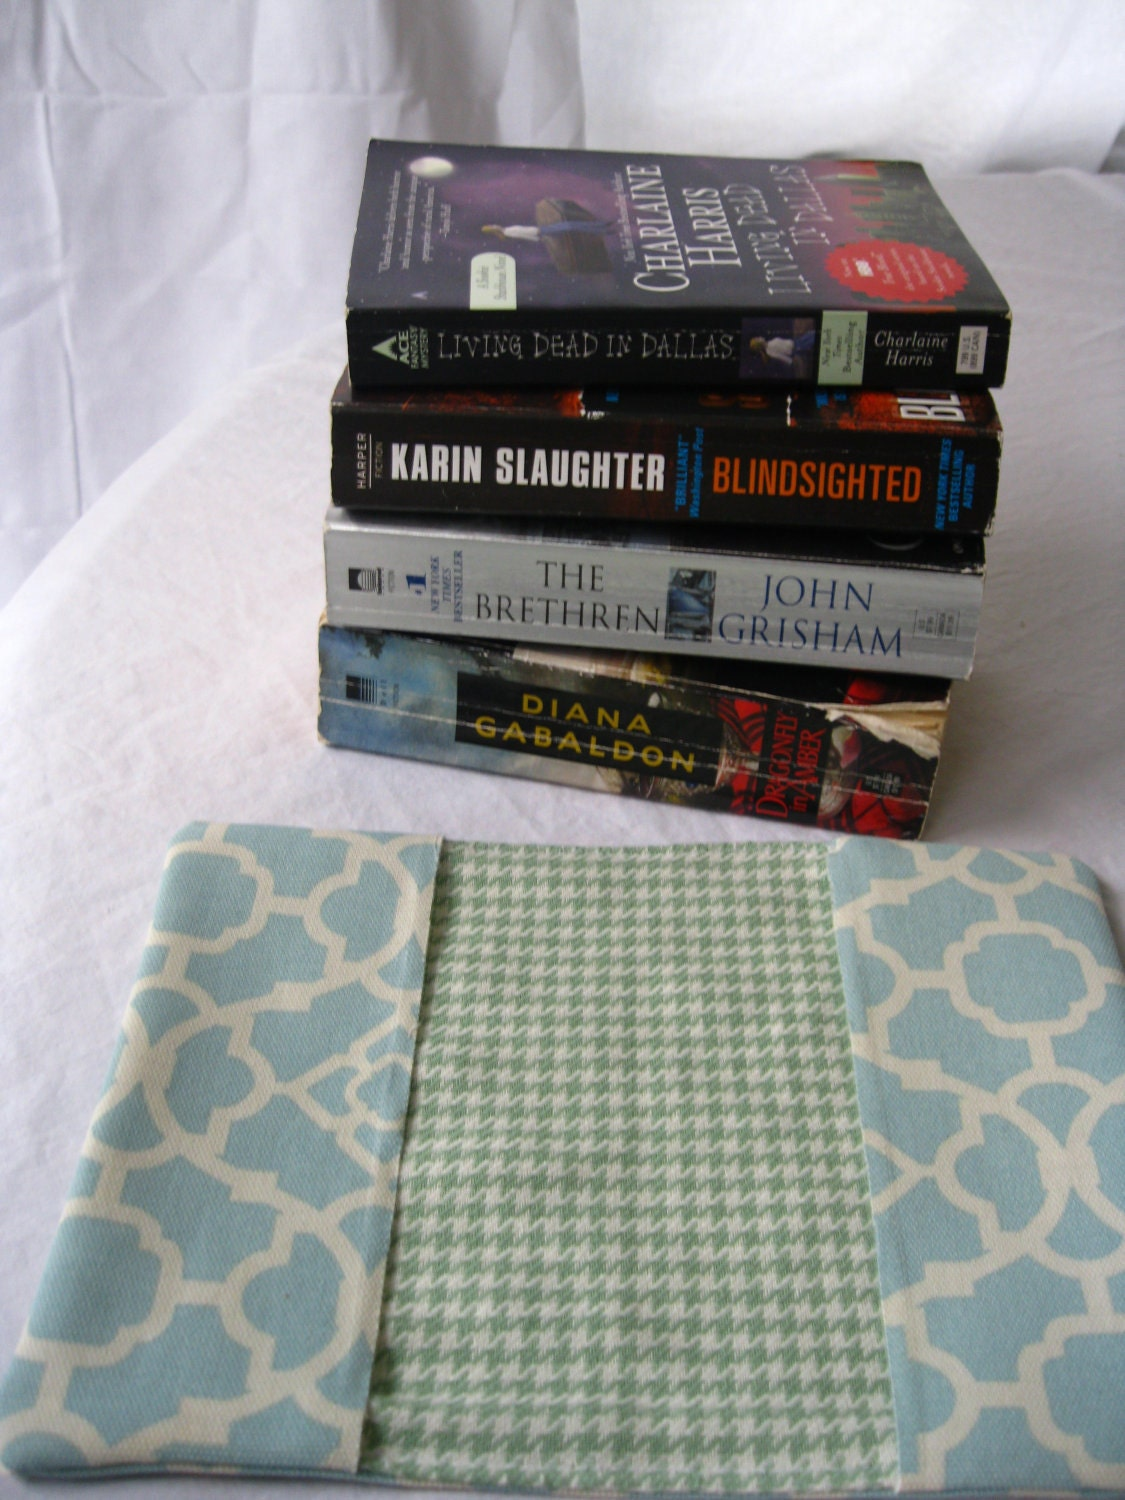 Upcycled Book Cover-- Trade Paperback  Aqua Blue Grapics on Cream Canvas with Green Houndstooth Lining